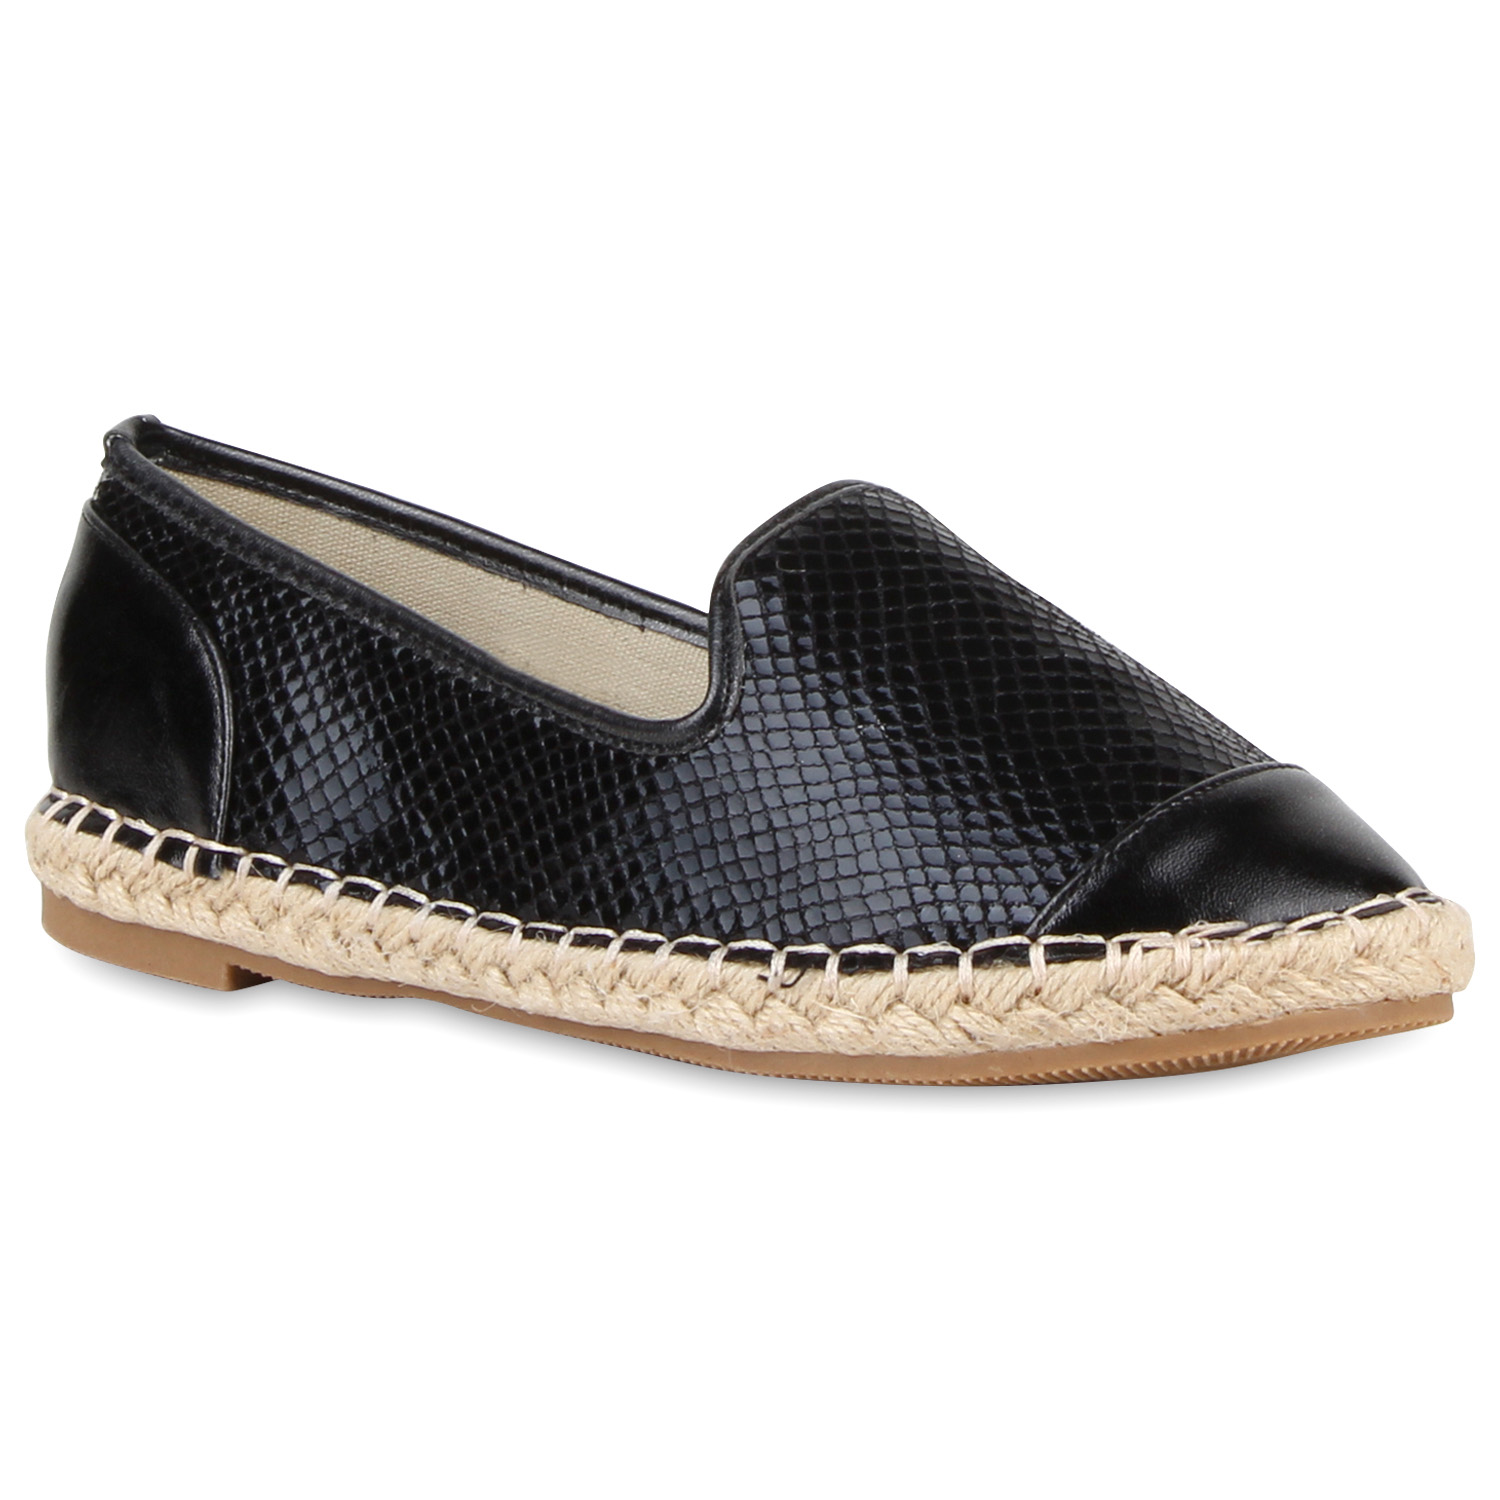 damen espadrilles bast slipper metallic sommer schuhe 810635 ebay. Black Bedroom Furniture Sets. Home Design Ideas